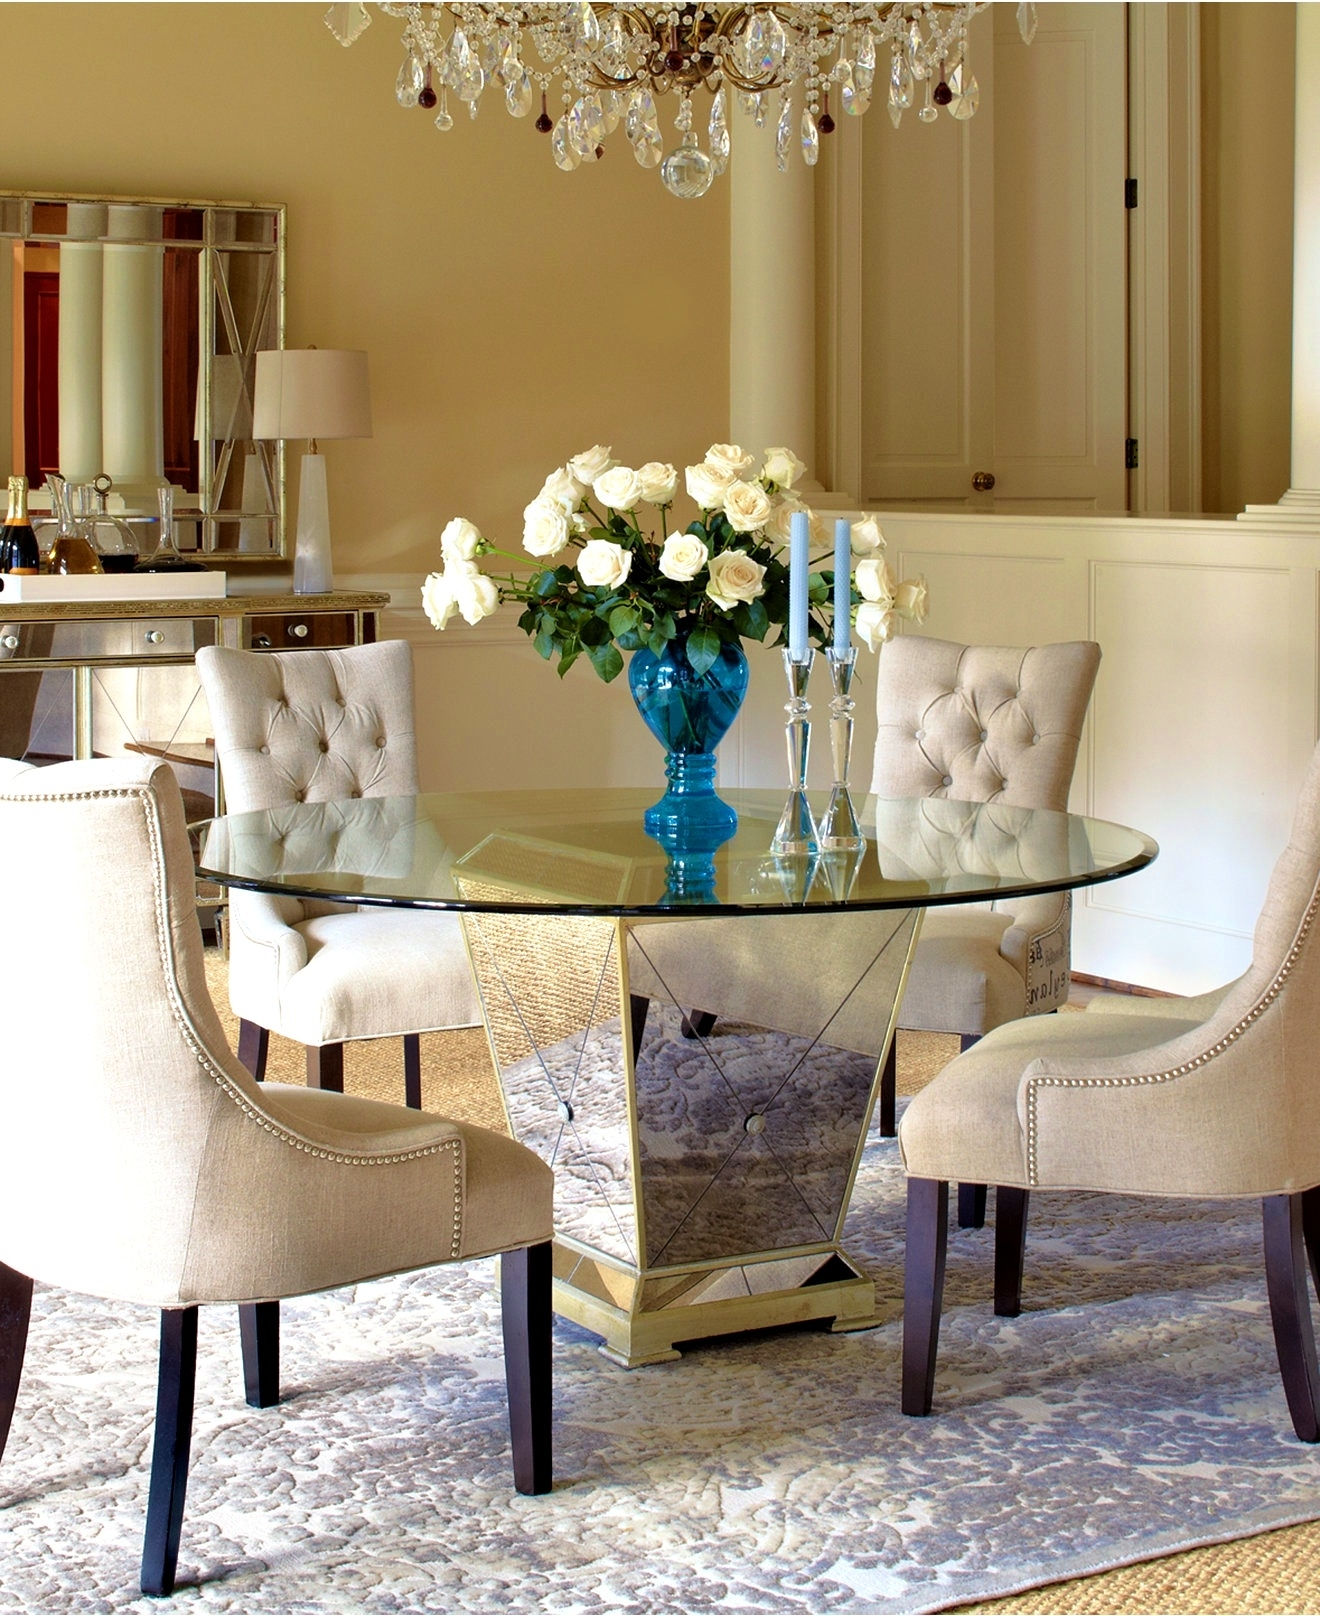 Macy's Round Dining Table Set • Table Setting Design For Well Known Macie Round Dining Tables (View 12 of 25)